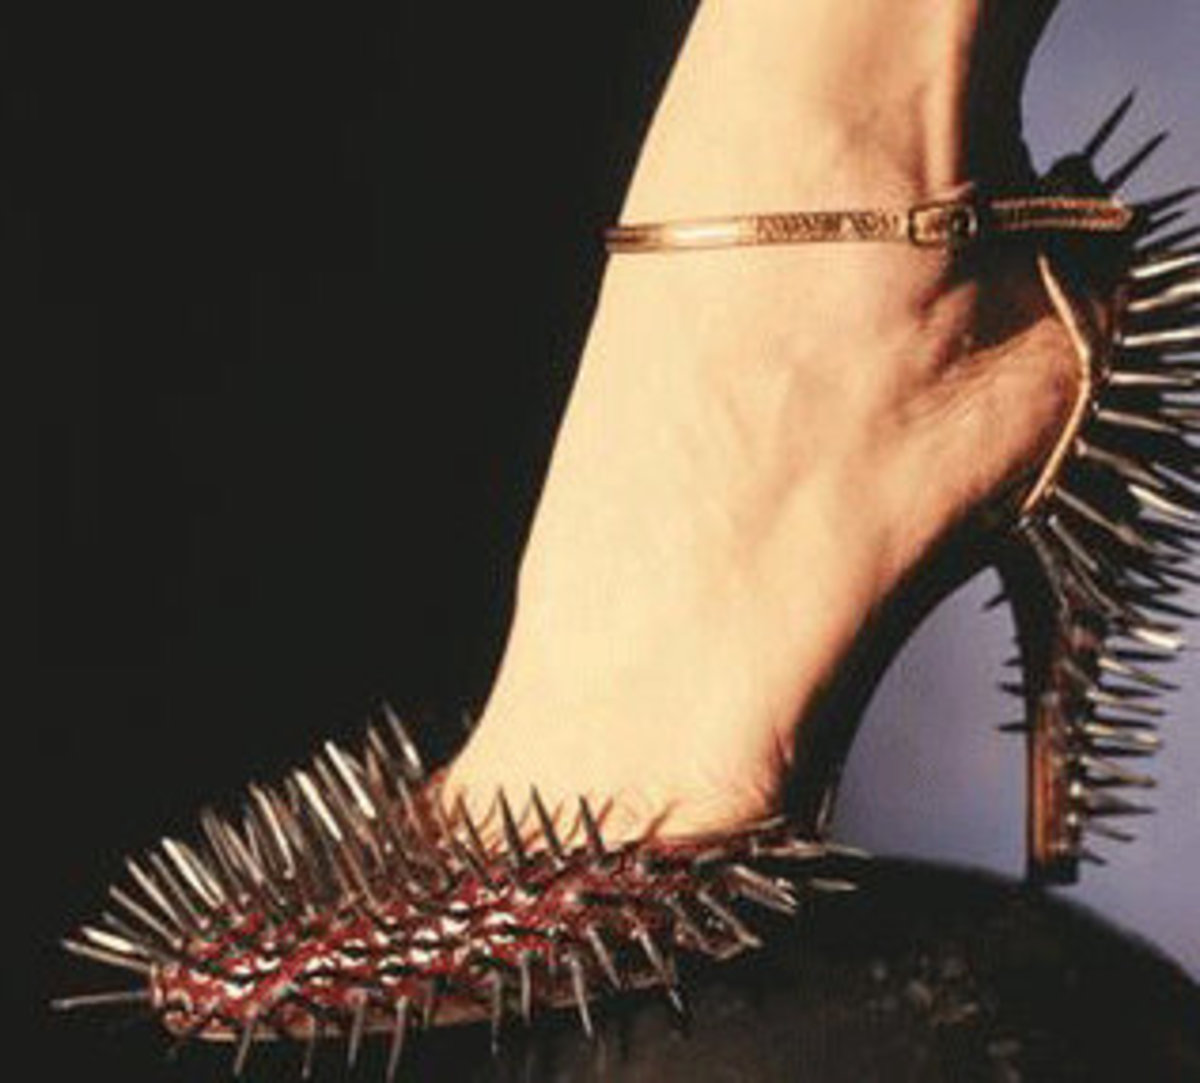 I don't think any man would want to get a kick outta these lol!